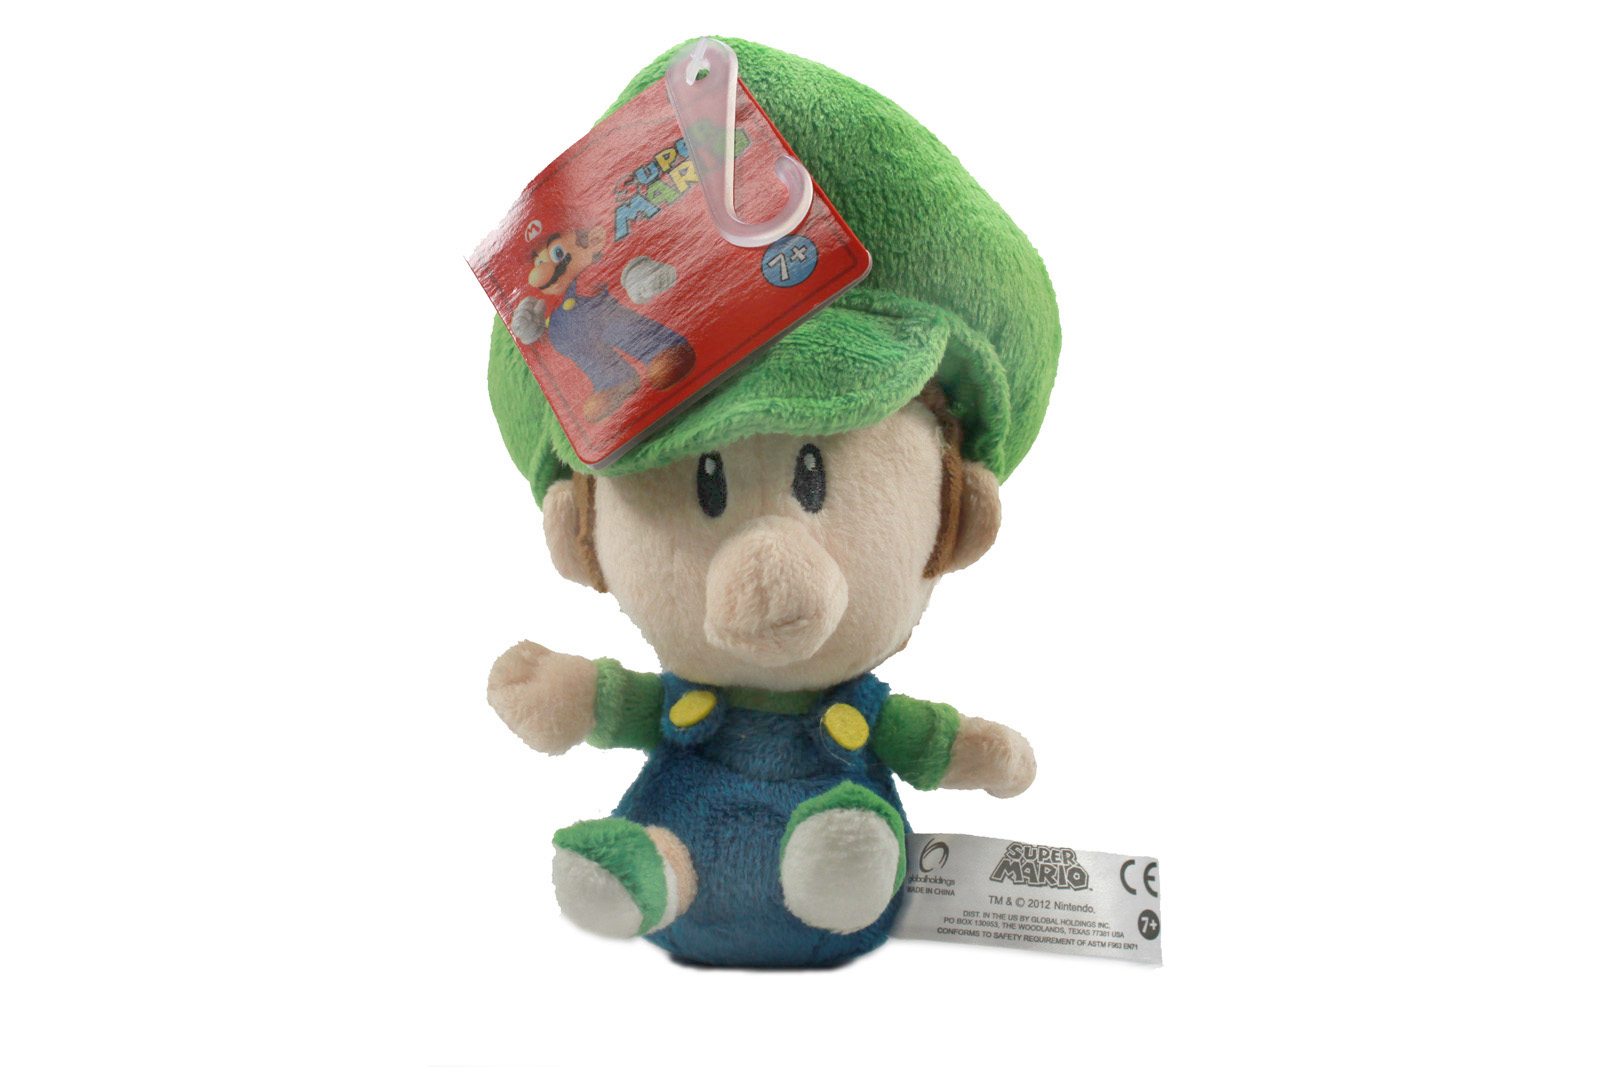 Authentic Brand New Global Holdings Super Mario Plush - 5 ...